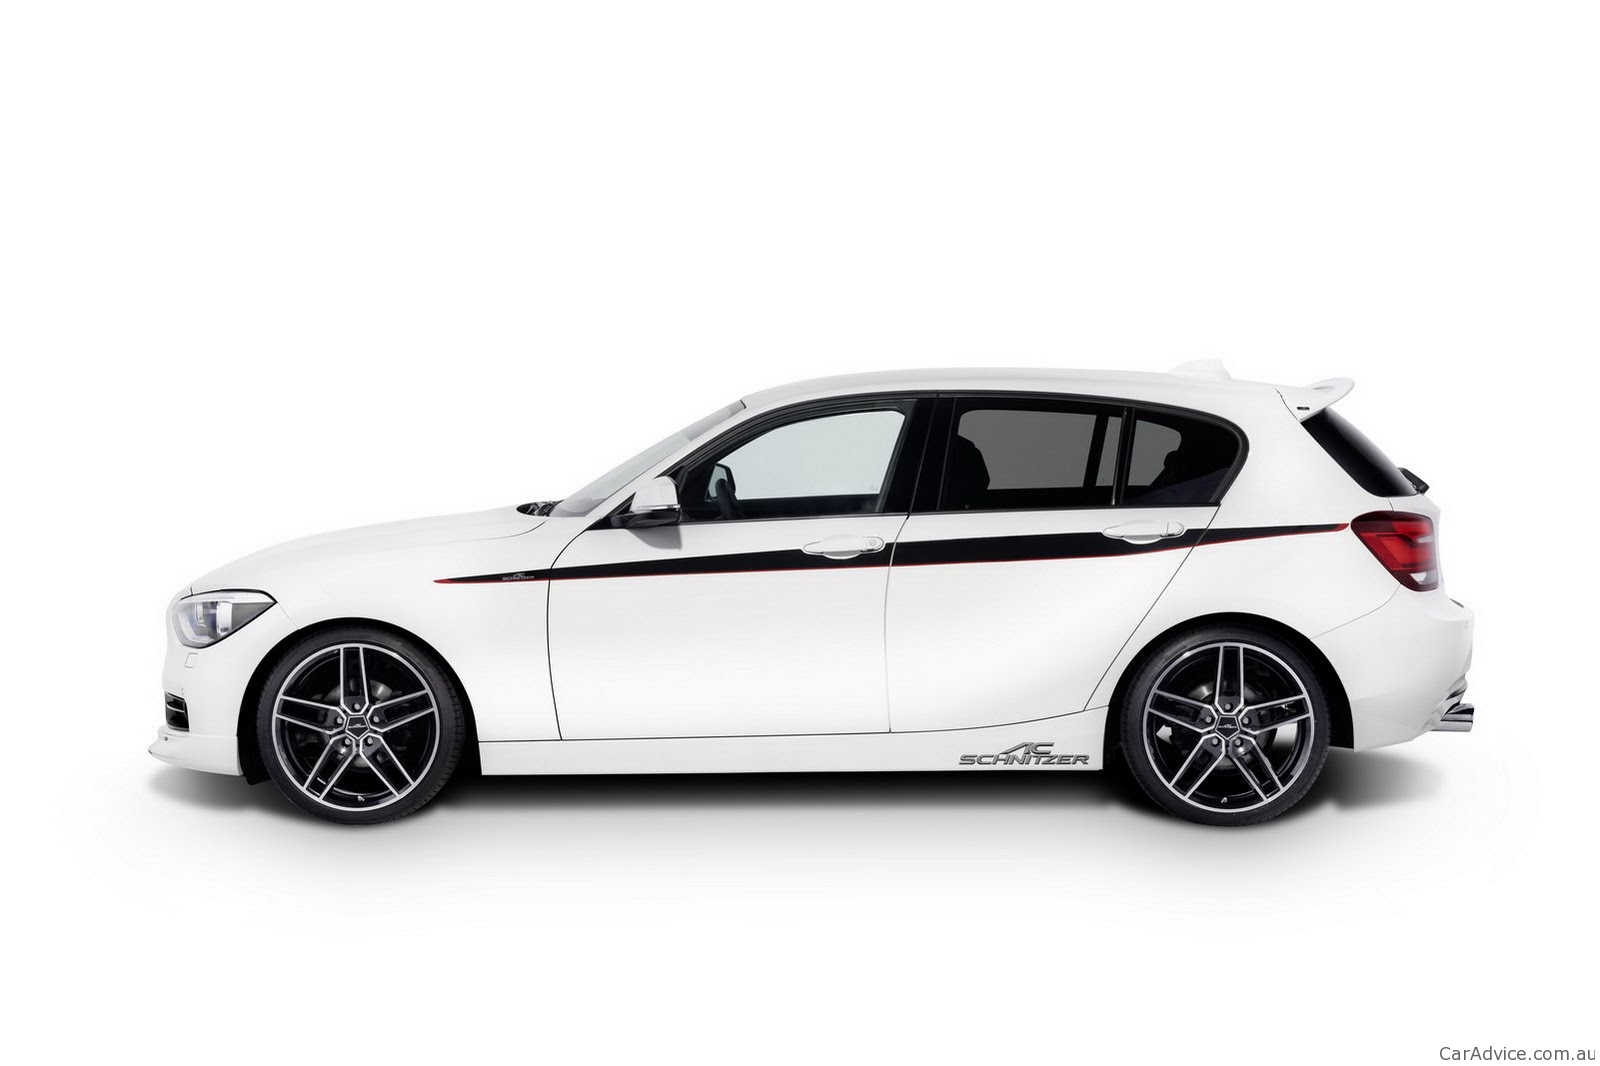 2012 BMW 1 Series tuned by AC Schnitzer - photos | CarAdvice